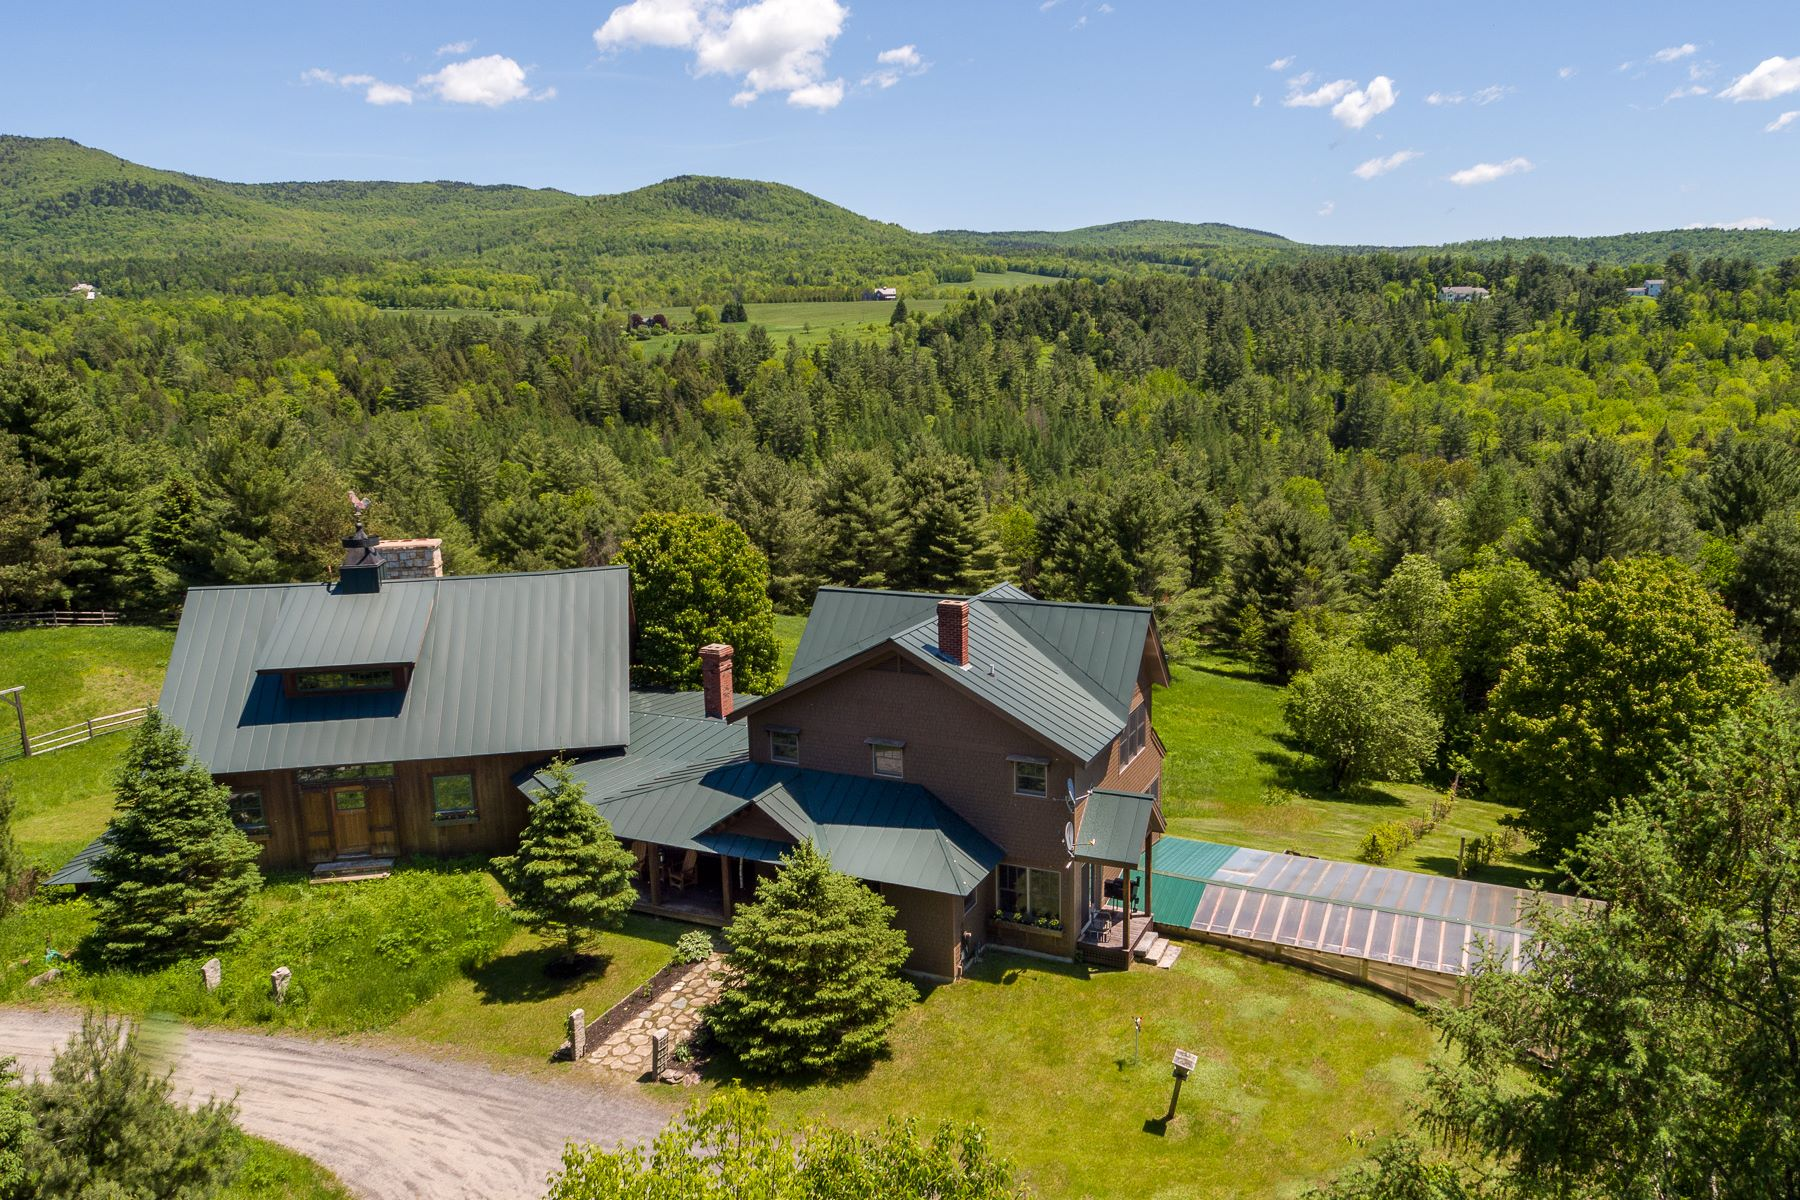 Single Family Home for Sale at Sugar Maple Lodge 1350 Sugar Maple Rd Lyndon, Vermont, 05851 United States